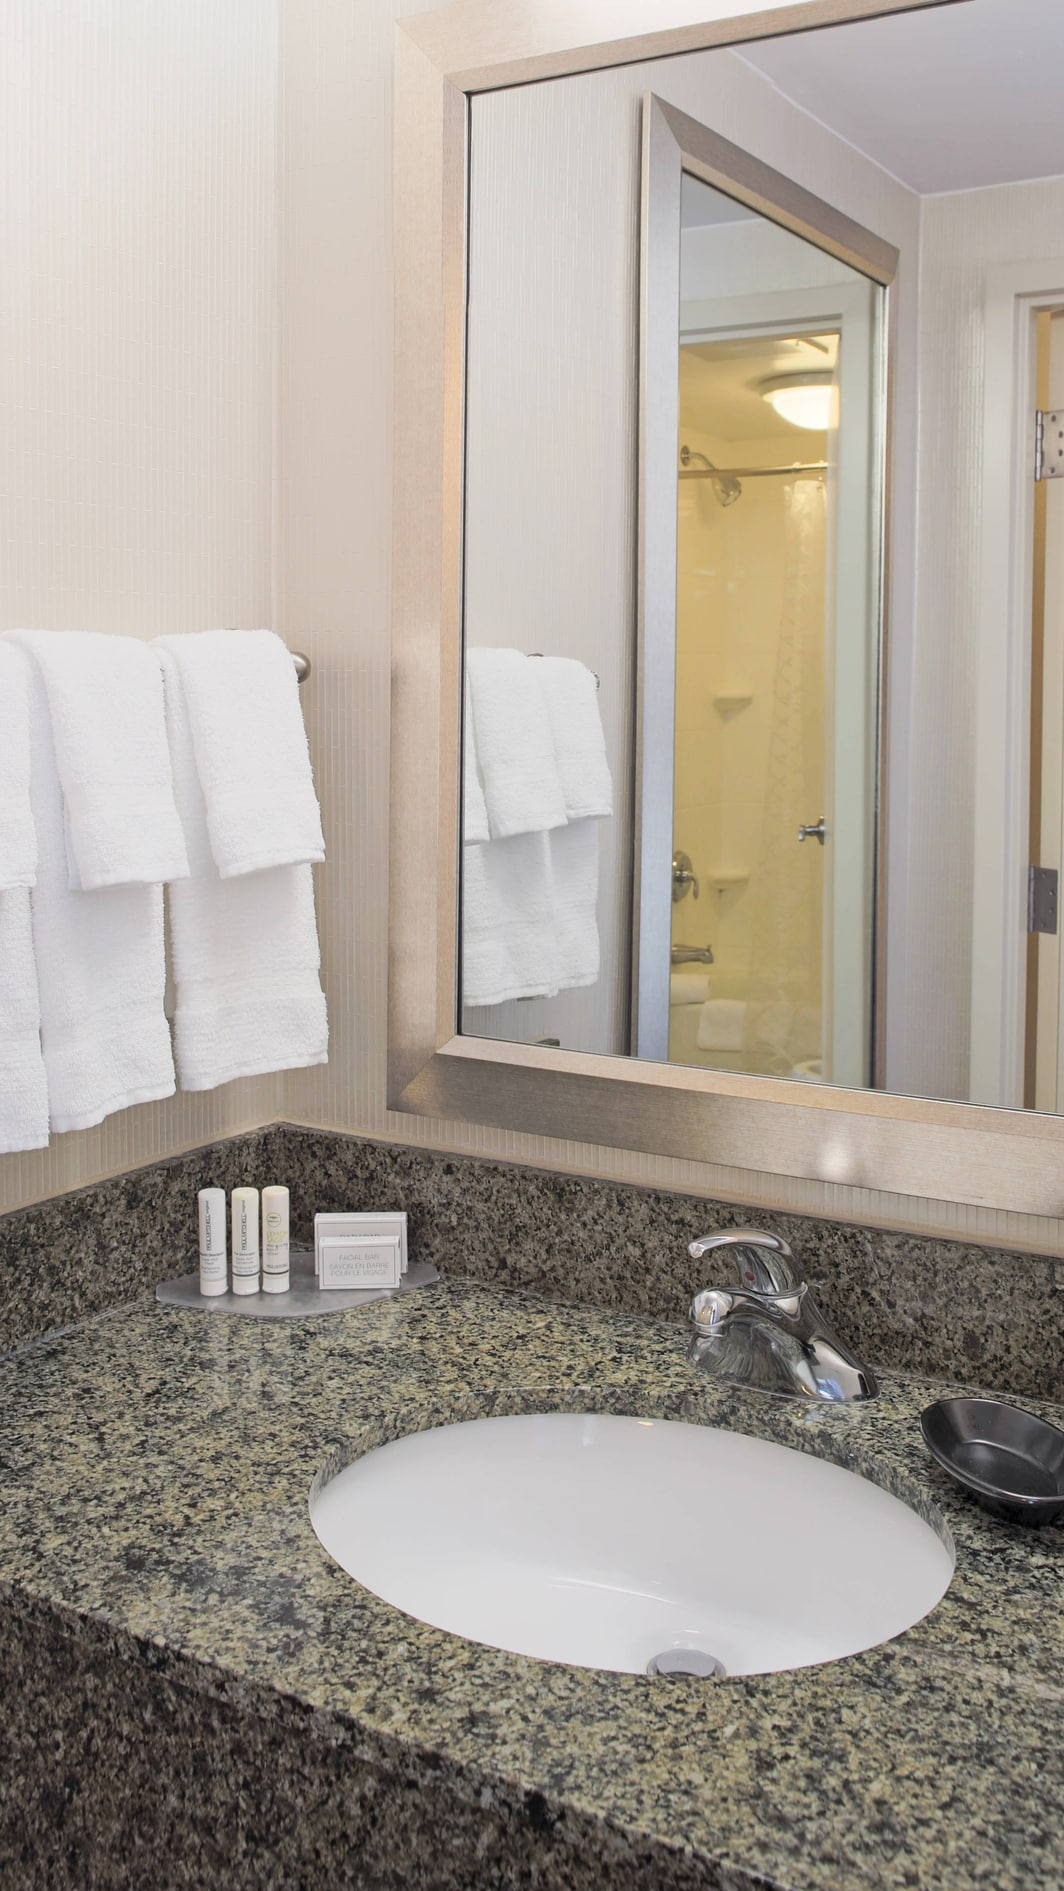 SpringHill Suites Virginia Beach Oceanfront Bathroom